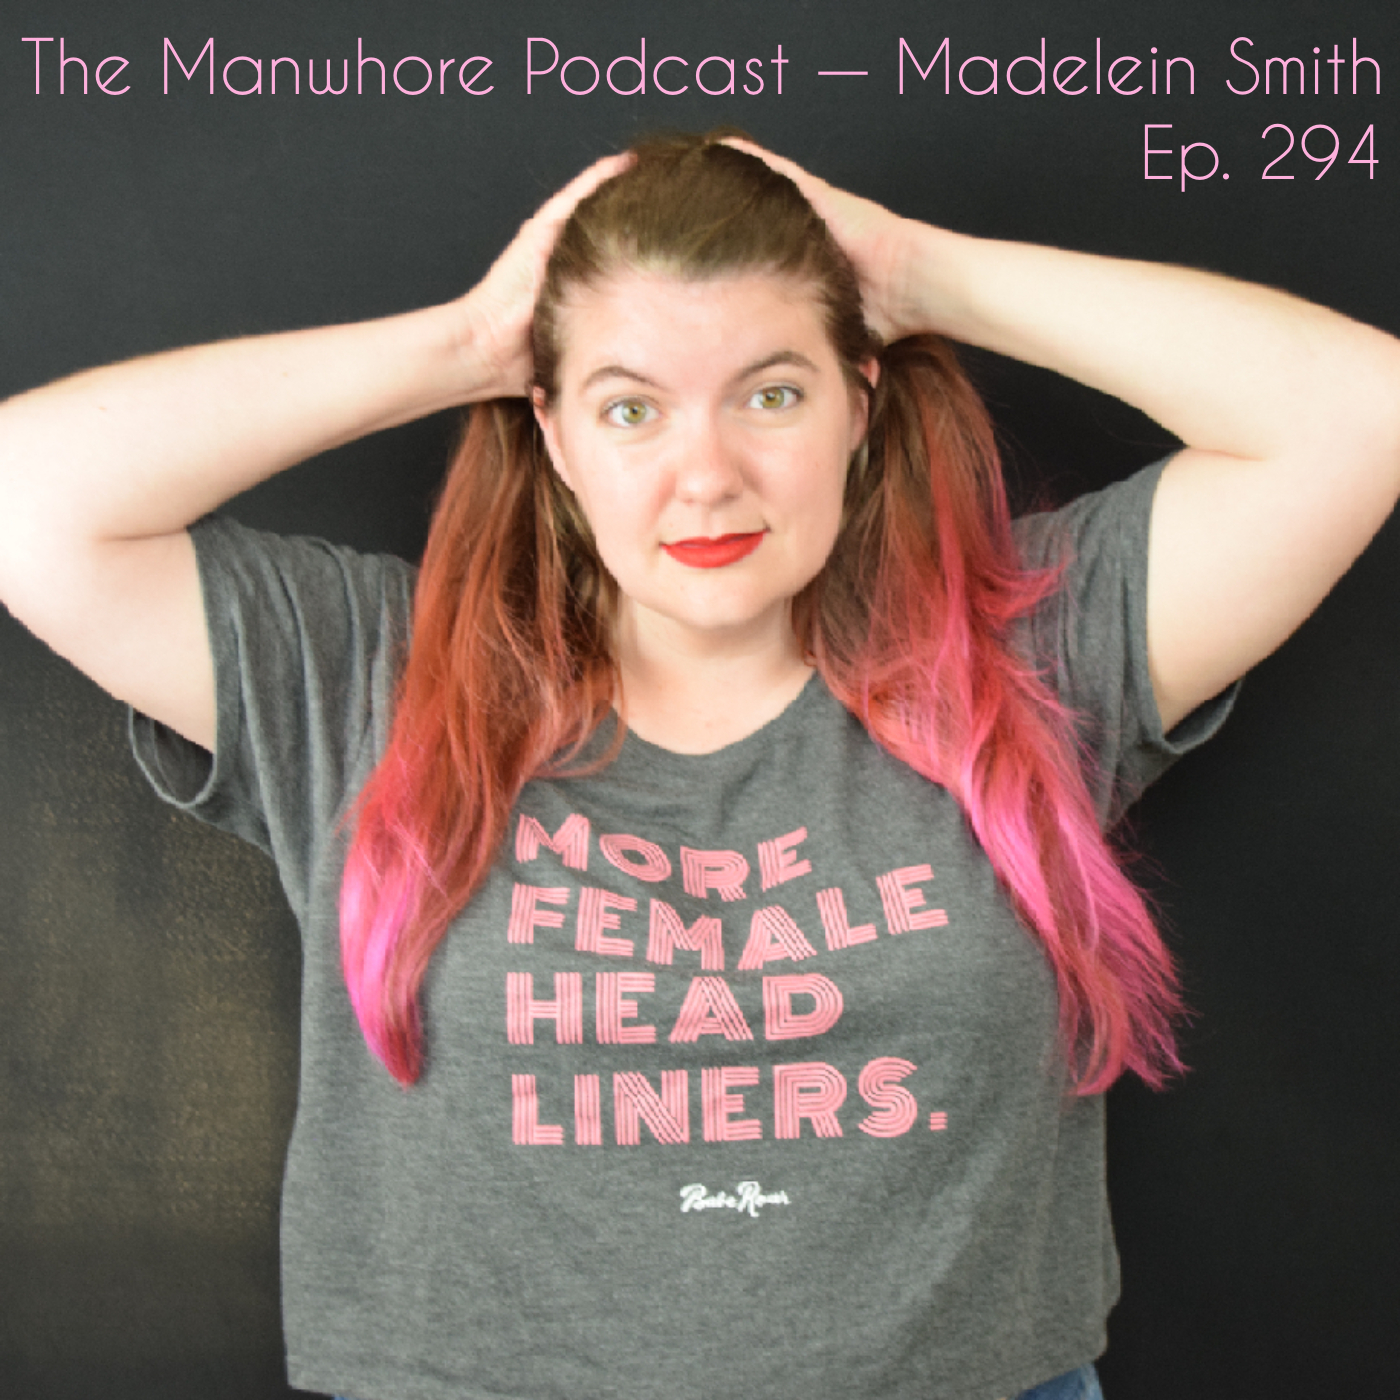 The Manwhore Podcast: A Sex-Positive Quest - Ep. 294: Managing My Husband's Mental Health with Madelein Smith